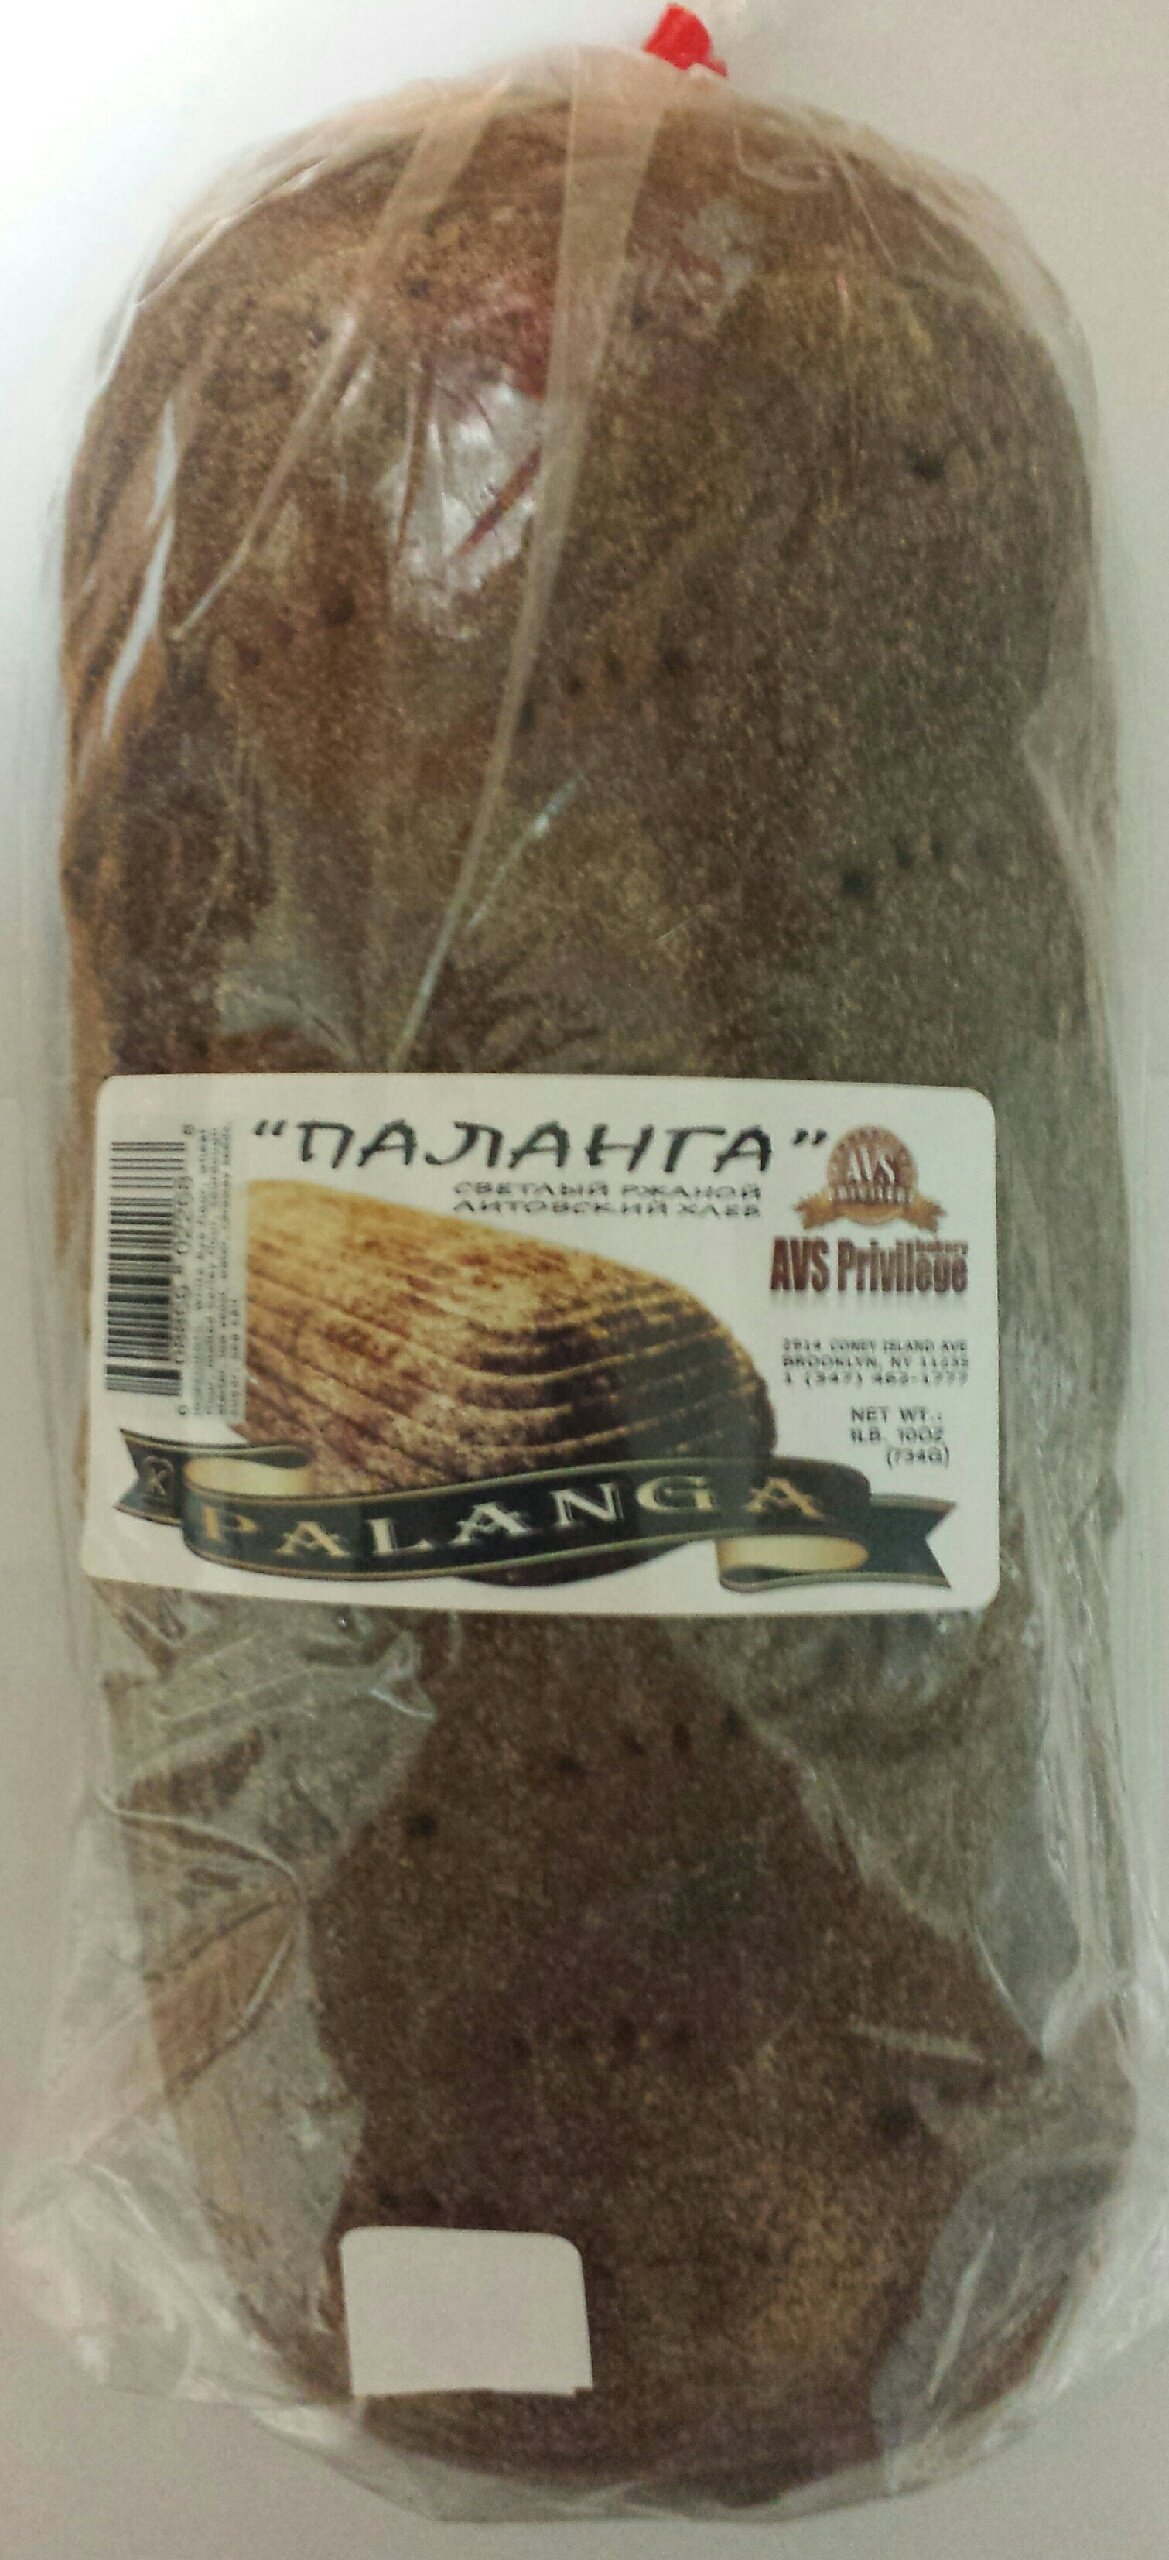 Palanga Rye Bread Pack of 2 by AVS Privilege Bakery (Image #1)